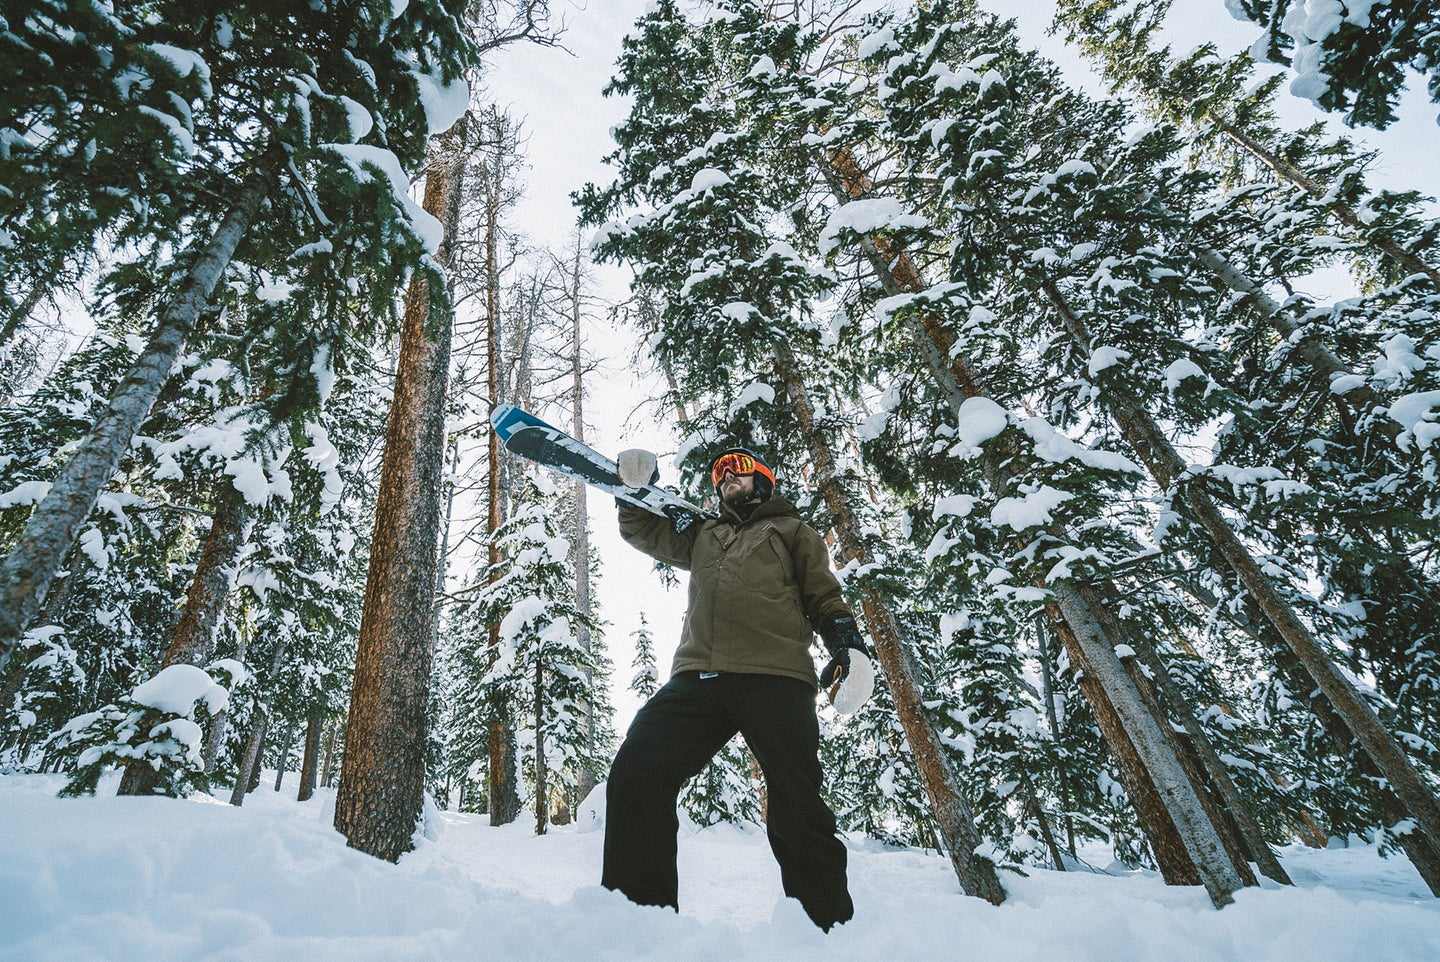 person in the best snow pants with skis on a mountain in front of trees